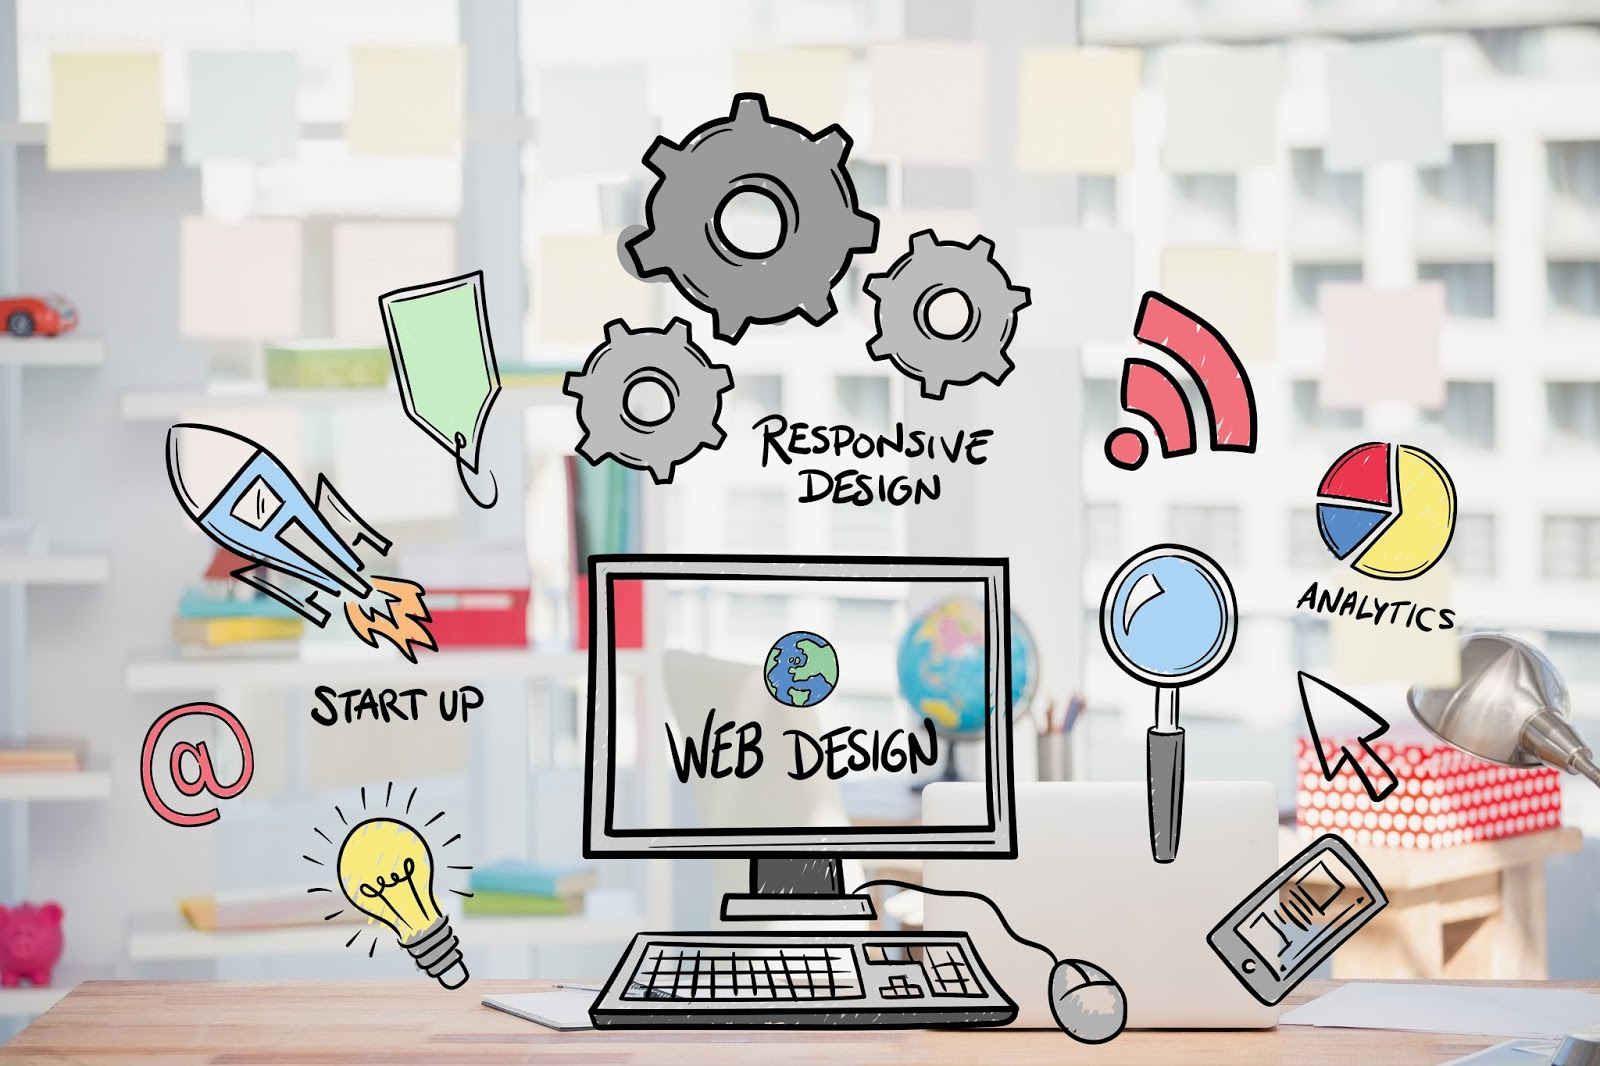 Top 7 Things to Think About When Choosing a Web Designer